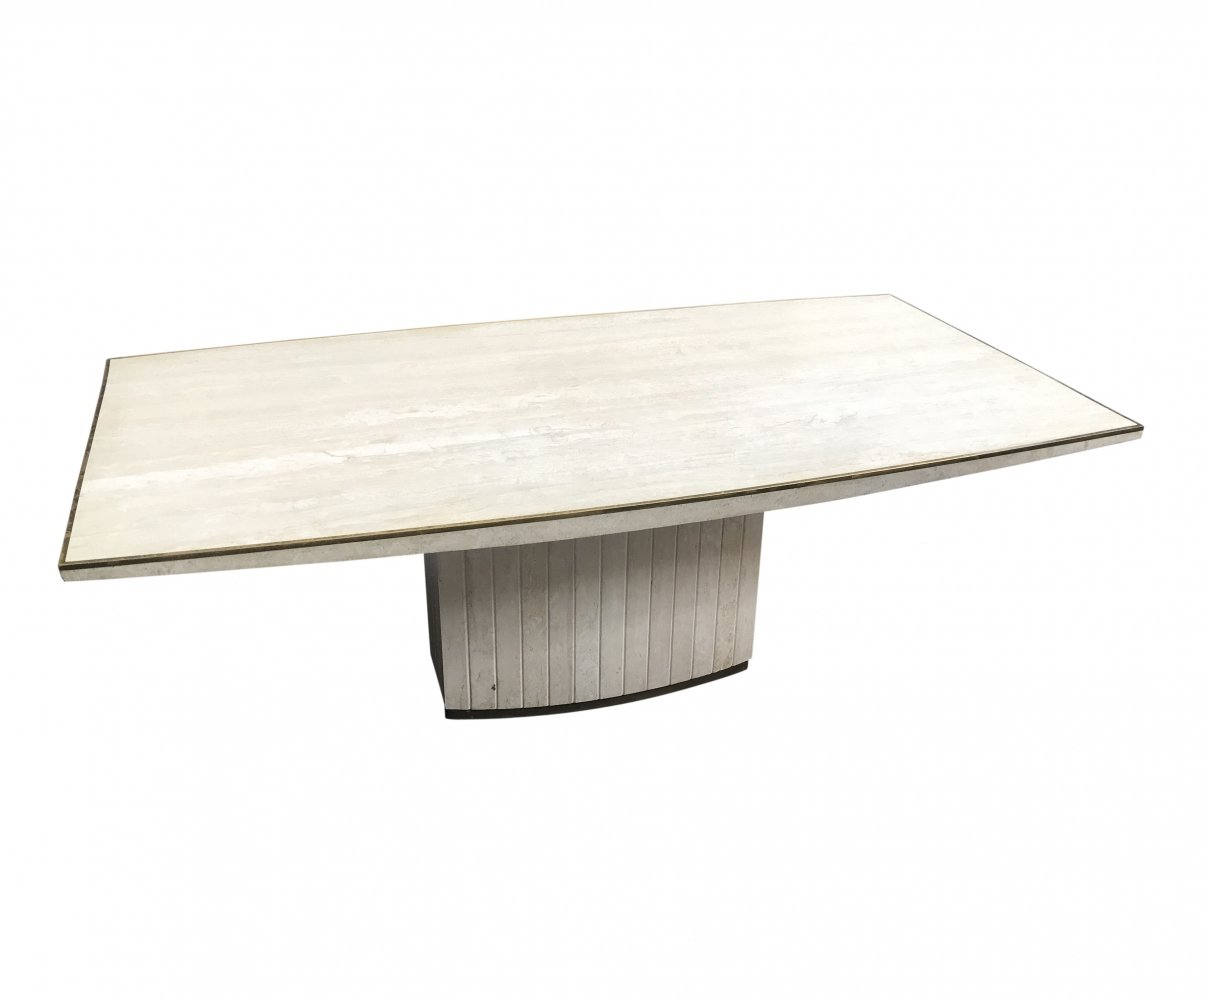 Willy Rizzo dining table, 1970s